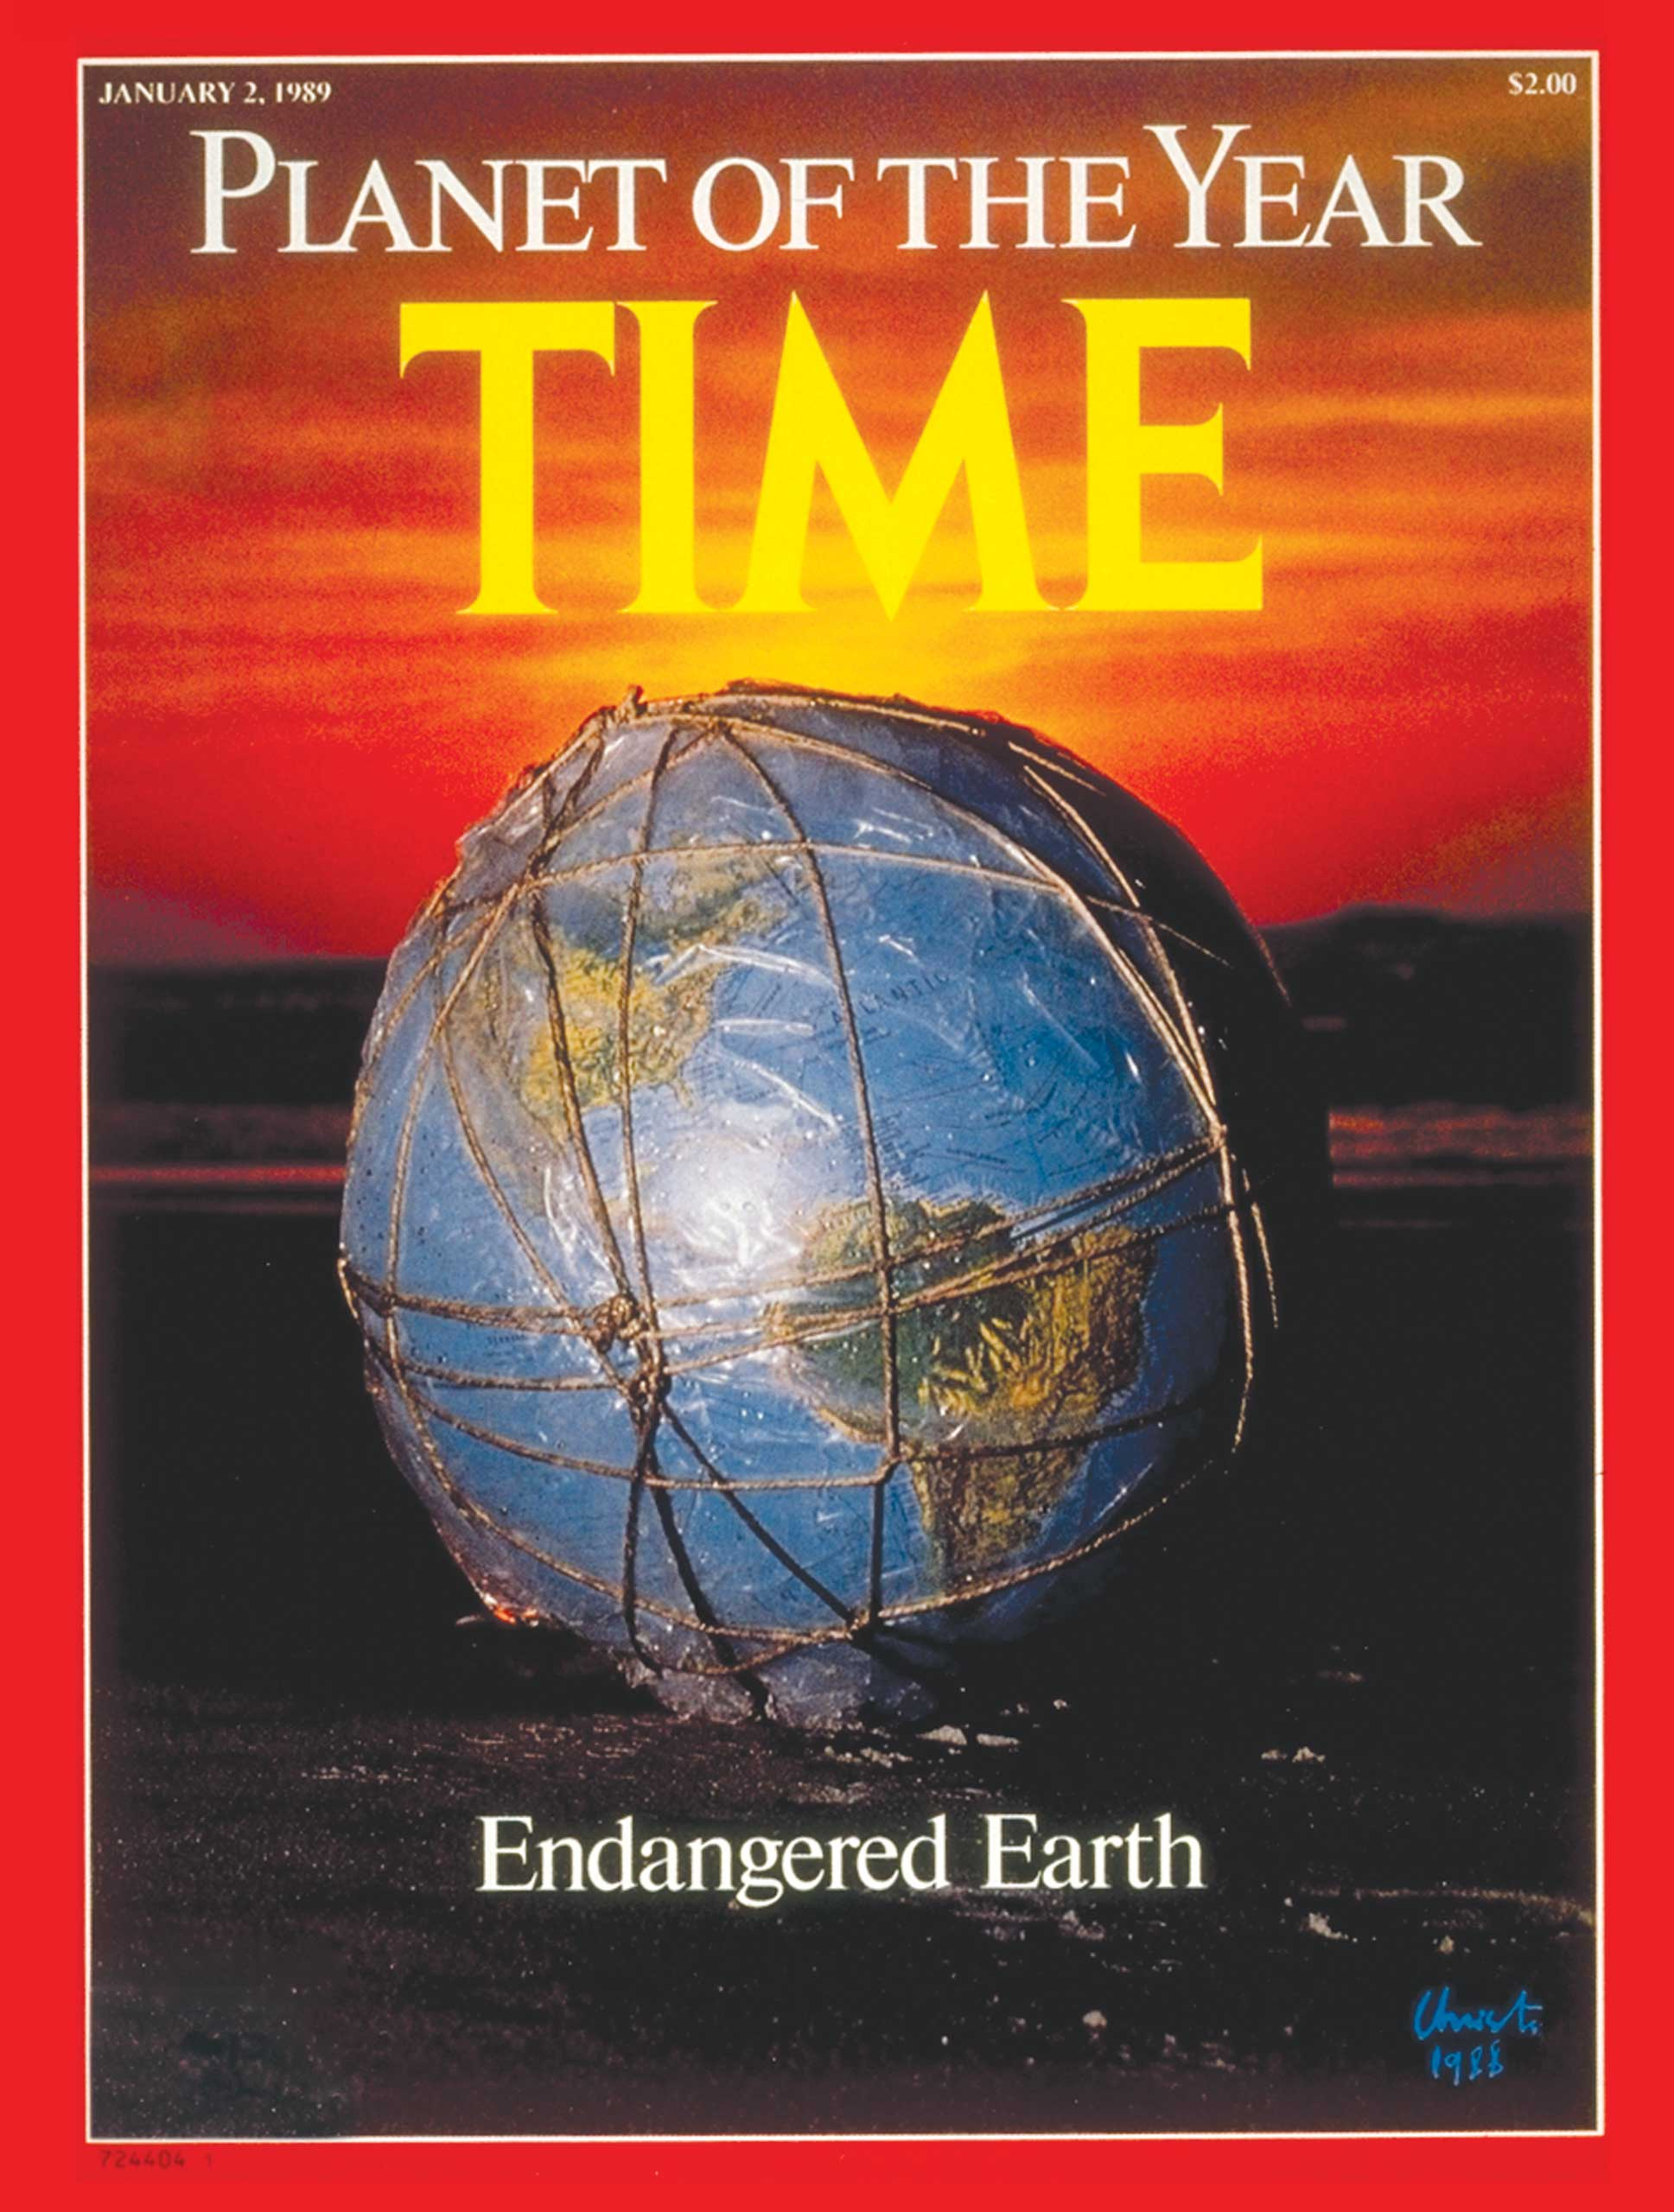 1988: Endangered Earth